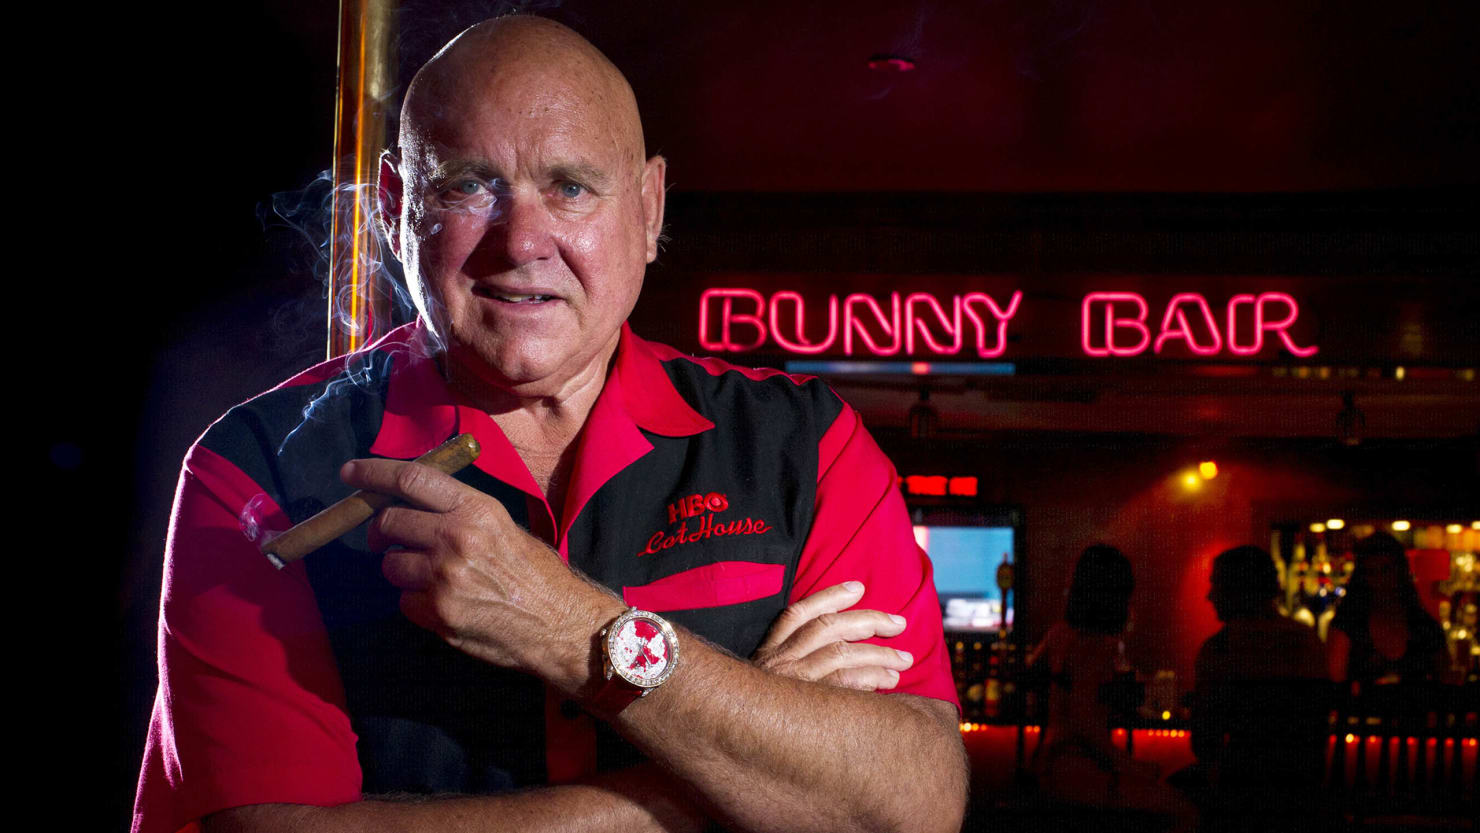 Nevada brothel ban ballot measure FAILS; deceased Dennis Hof elected to state assembly